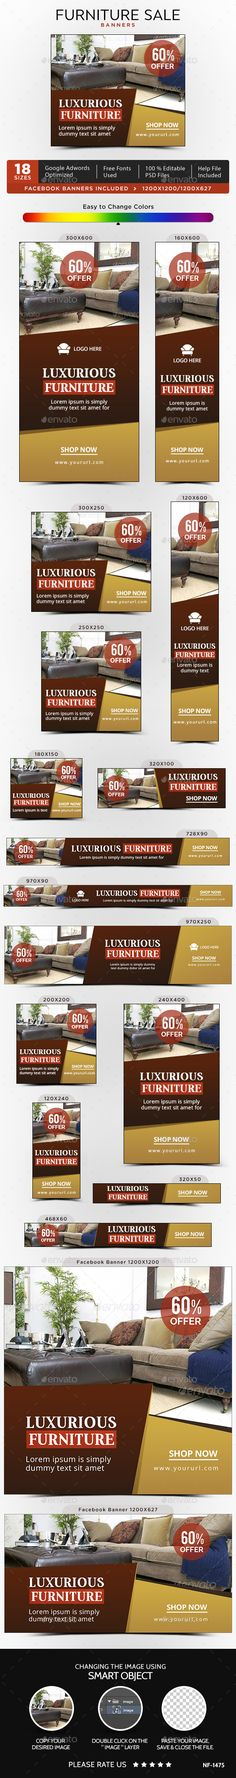 Furniture Sale Banners Template PSD. Download here: https://graphicriver.net/item/furniture-sale-banners/17359616?ref=ksioks